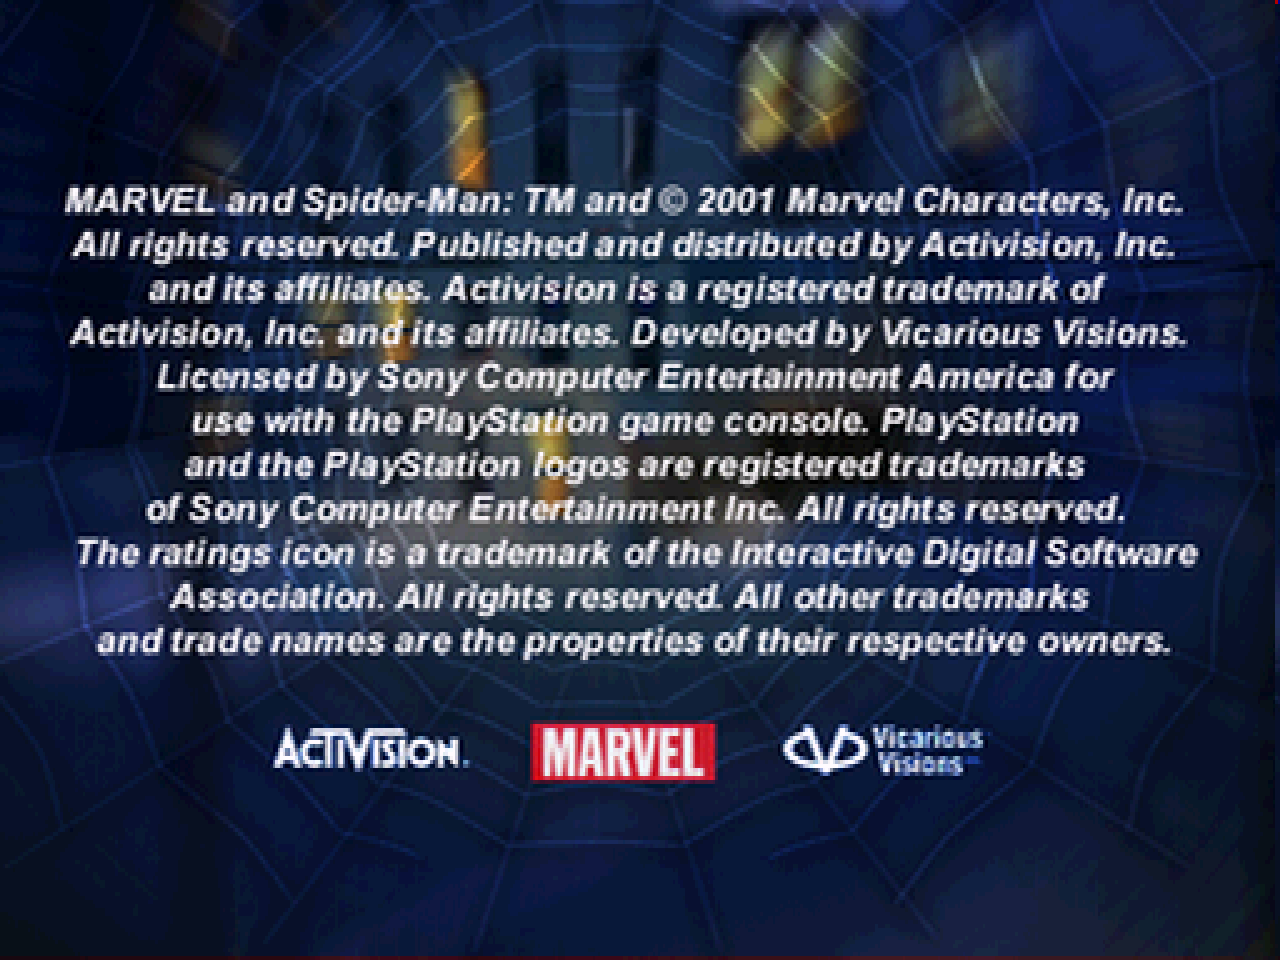 https://s3.eu-west-3.amazonaws.com/games.anthony-dessalles.com/Spider-Man 2 Enter Electro PS1 2020 - Screenshots/Spider-Man 2 Enter Electro-201125-184902.png